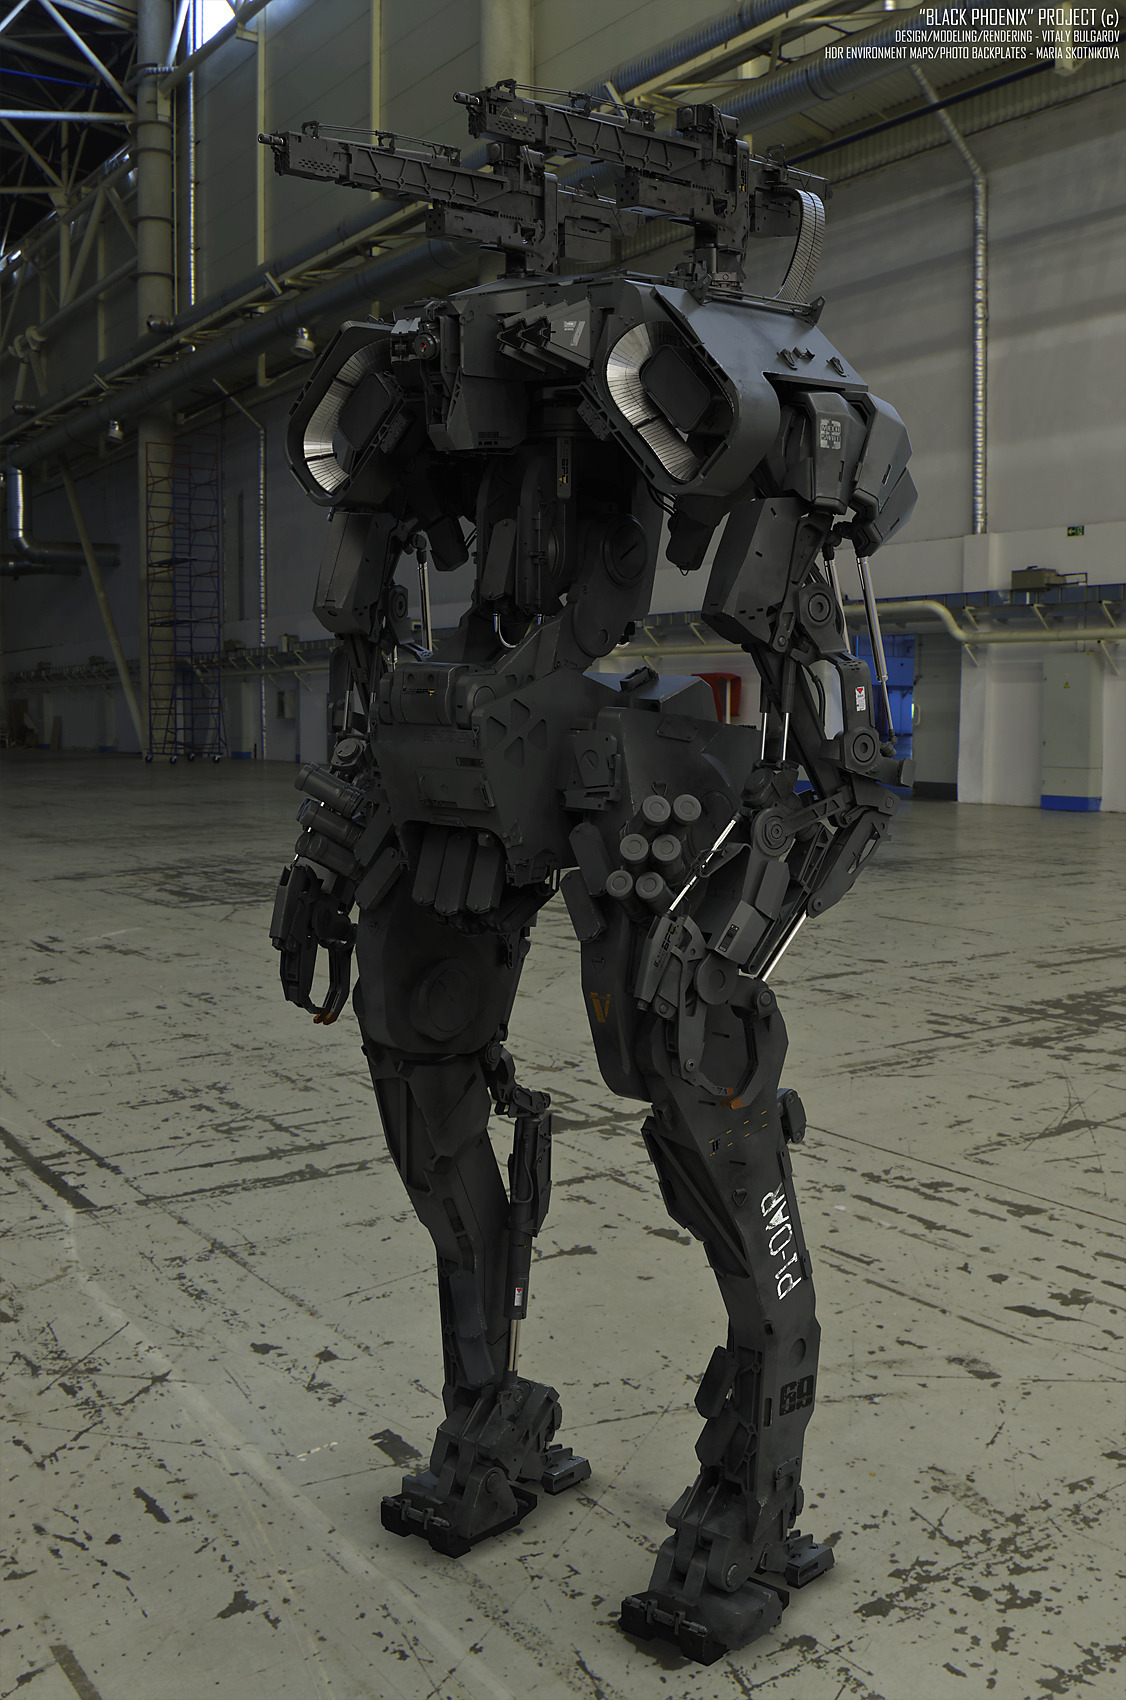 aww man, mechs are cooool